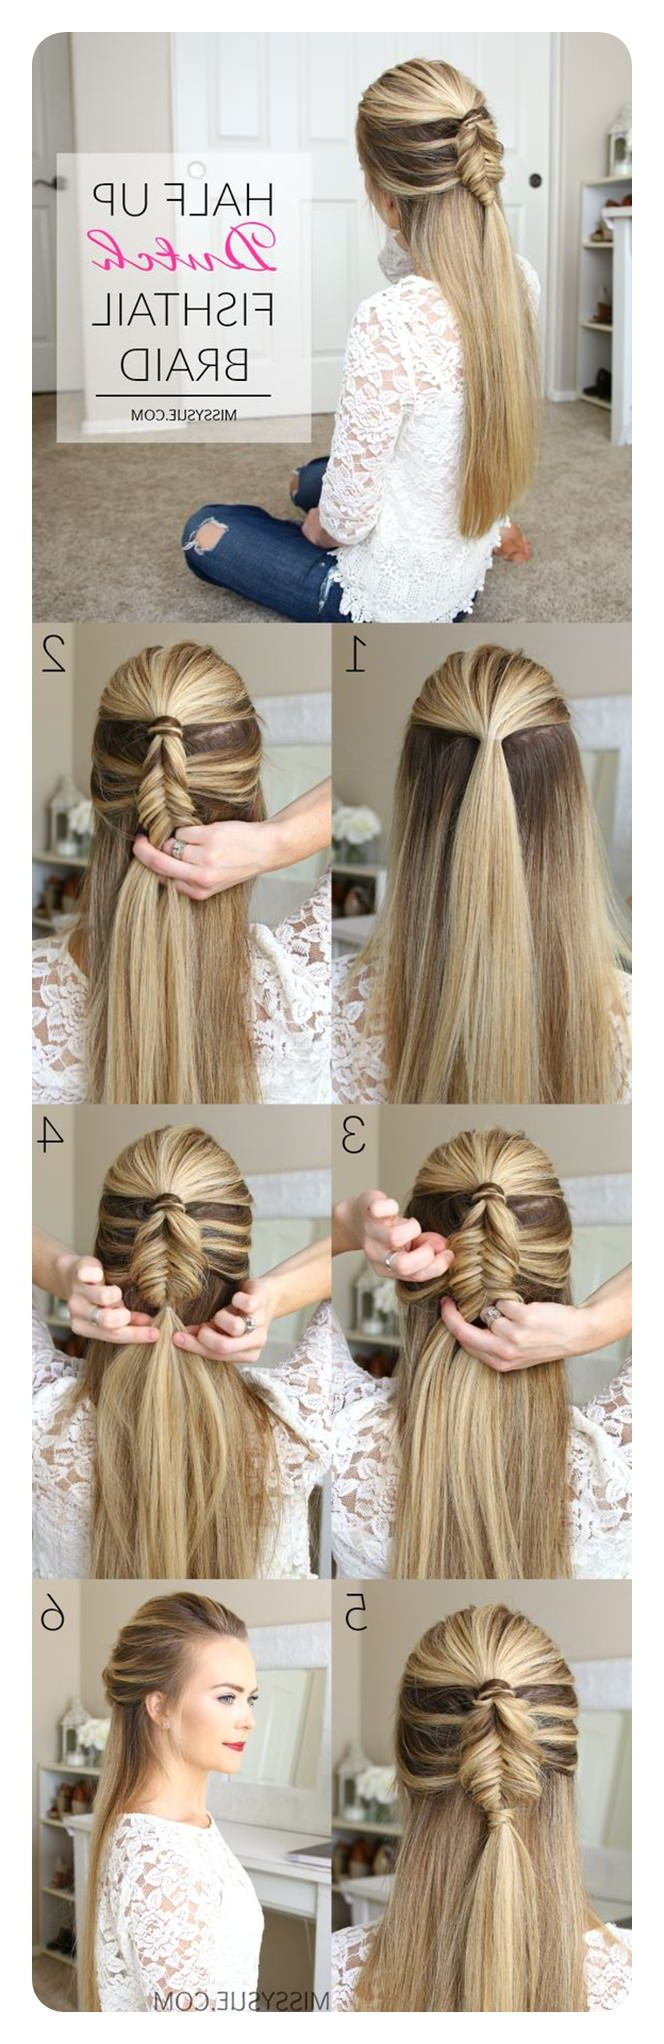 104 Fishtail Braids Hairstyles That Turn Heads Intended For Well Liked Thick Two Side Fishtails Braid Hairstyles (Gallery 5 of 20)